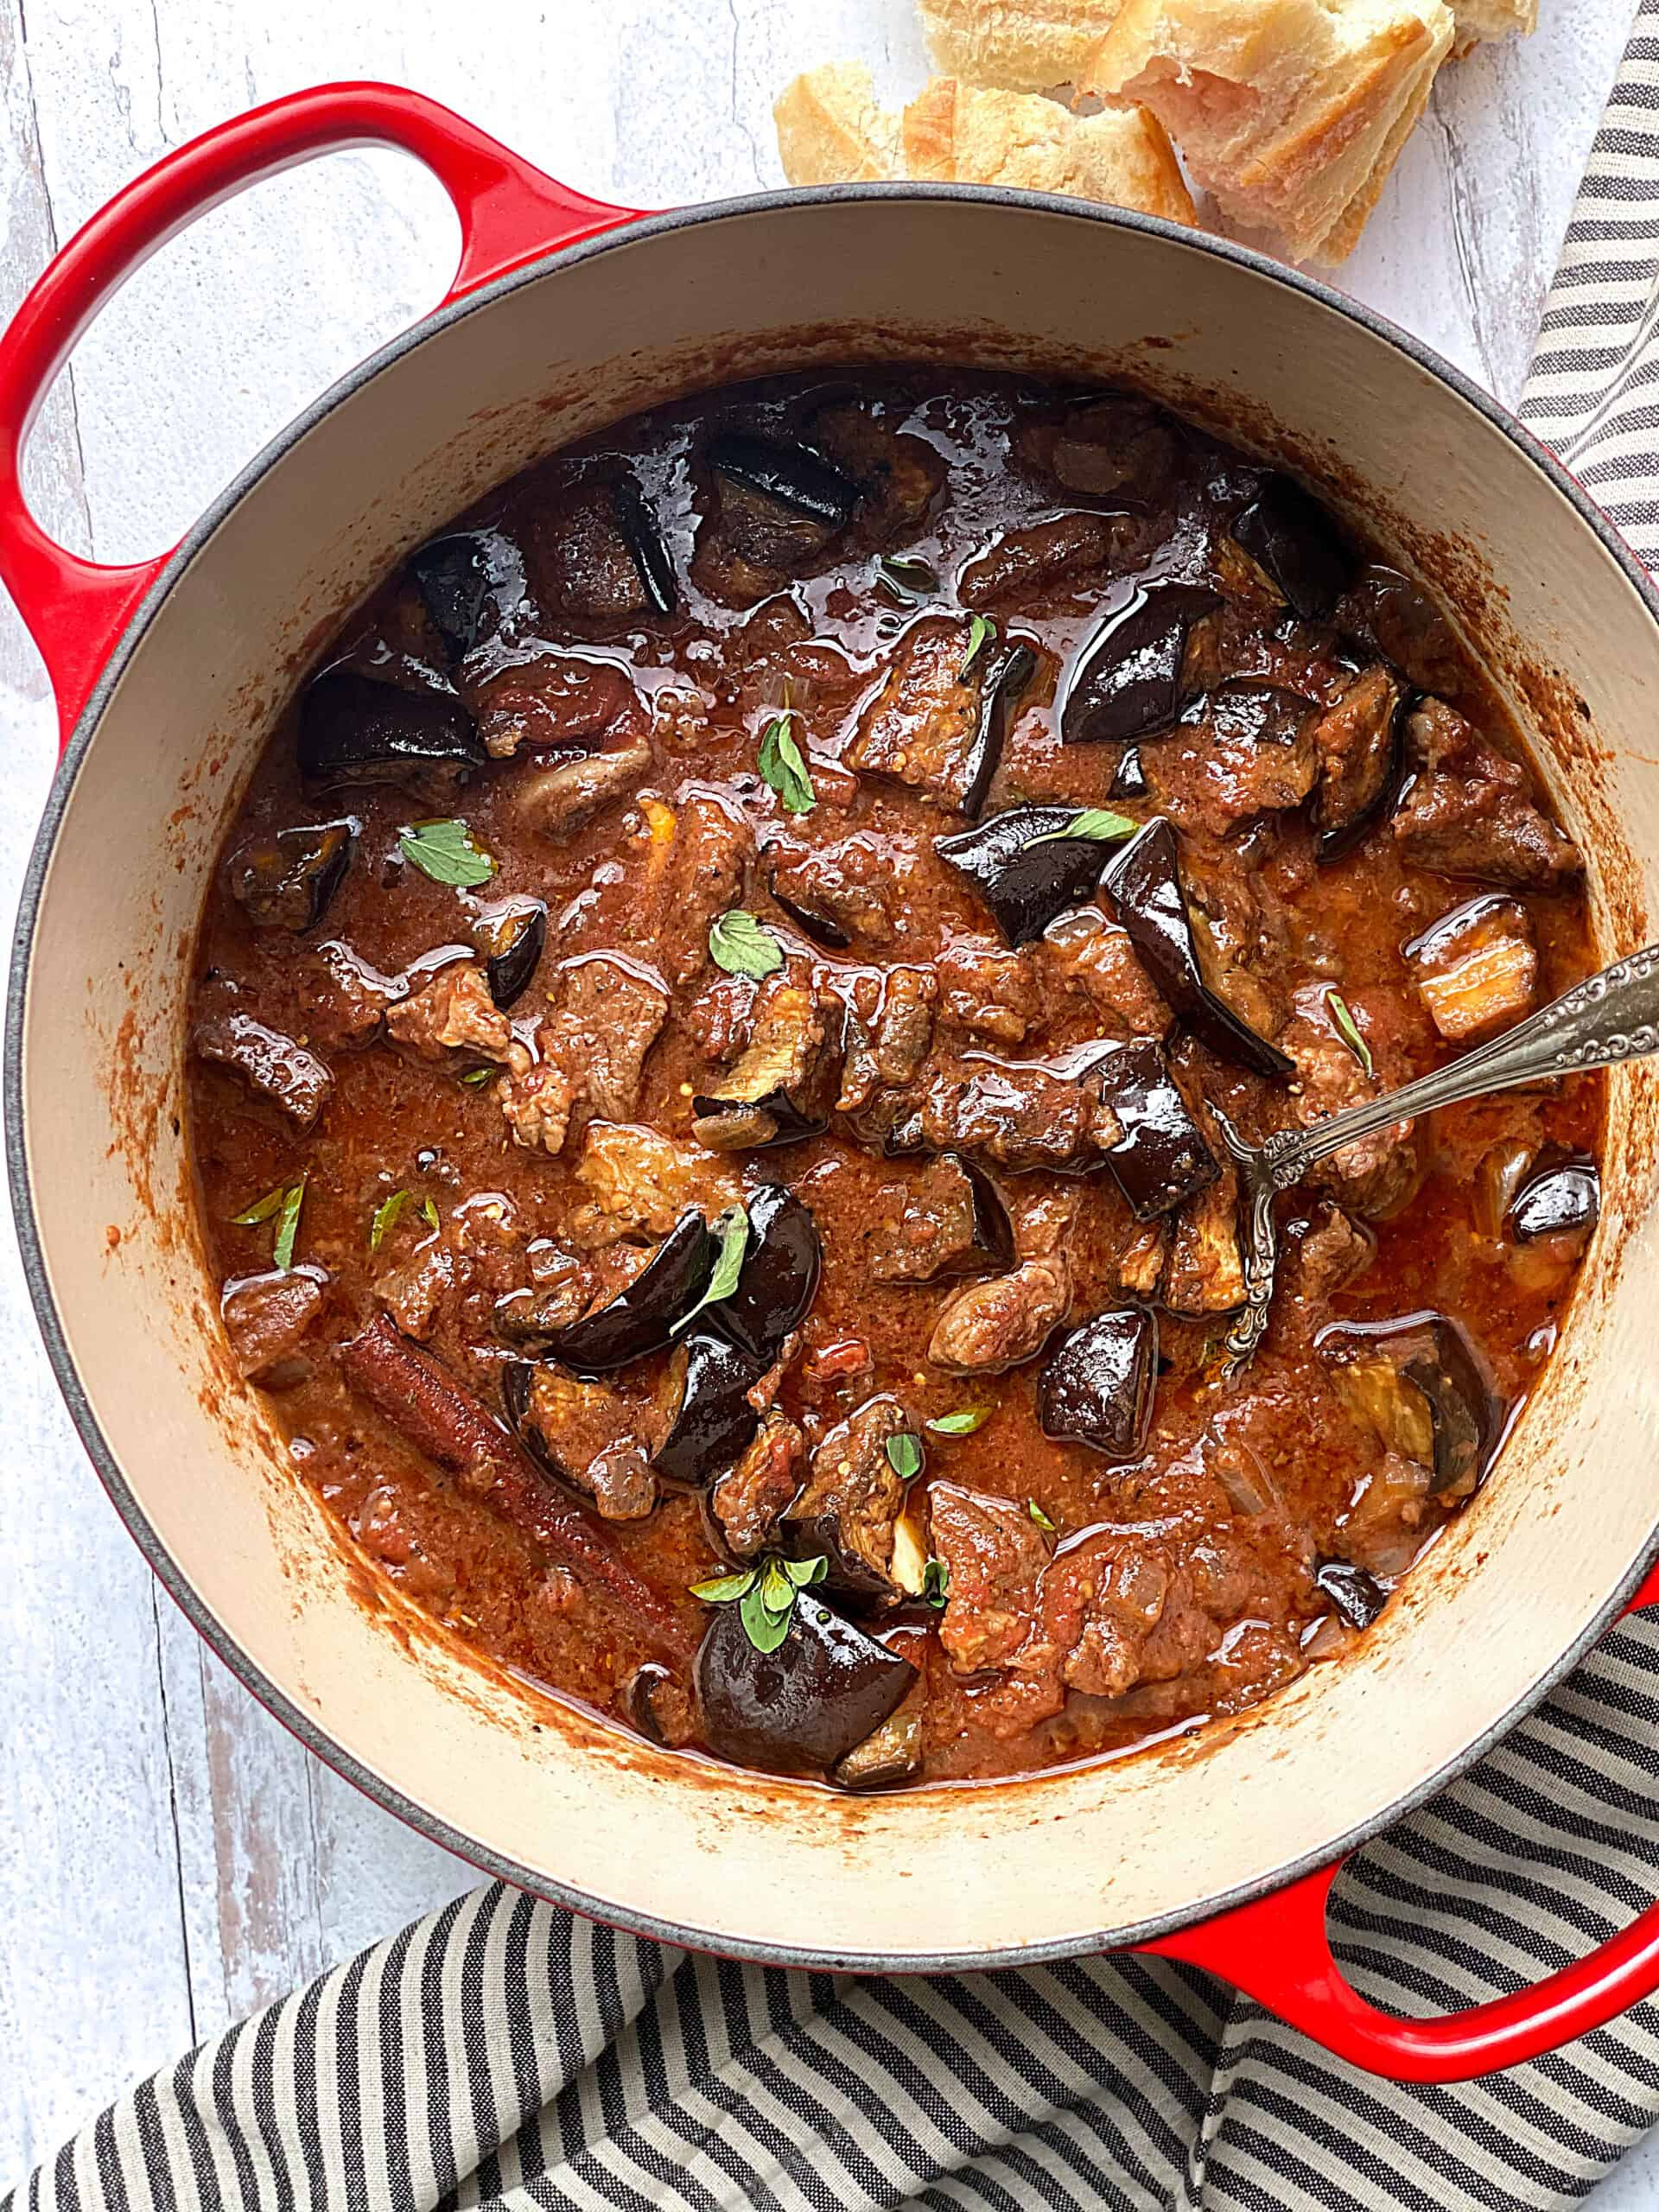 A red dutch oven with beef and eggplant stew